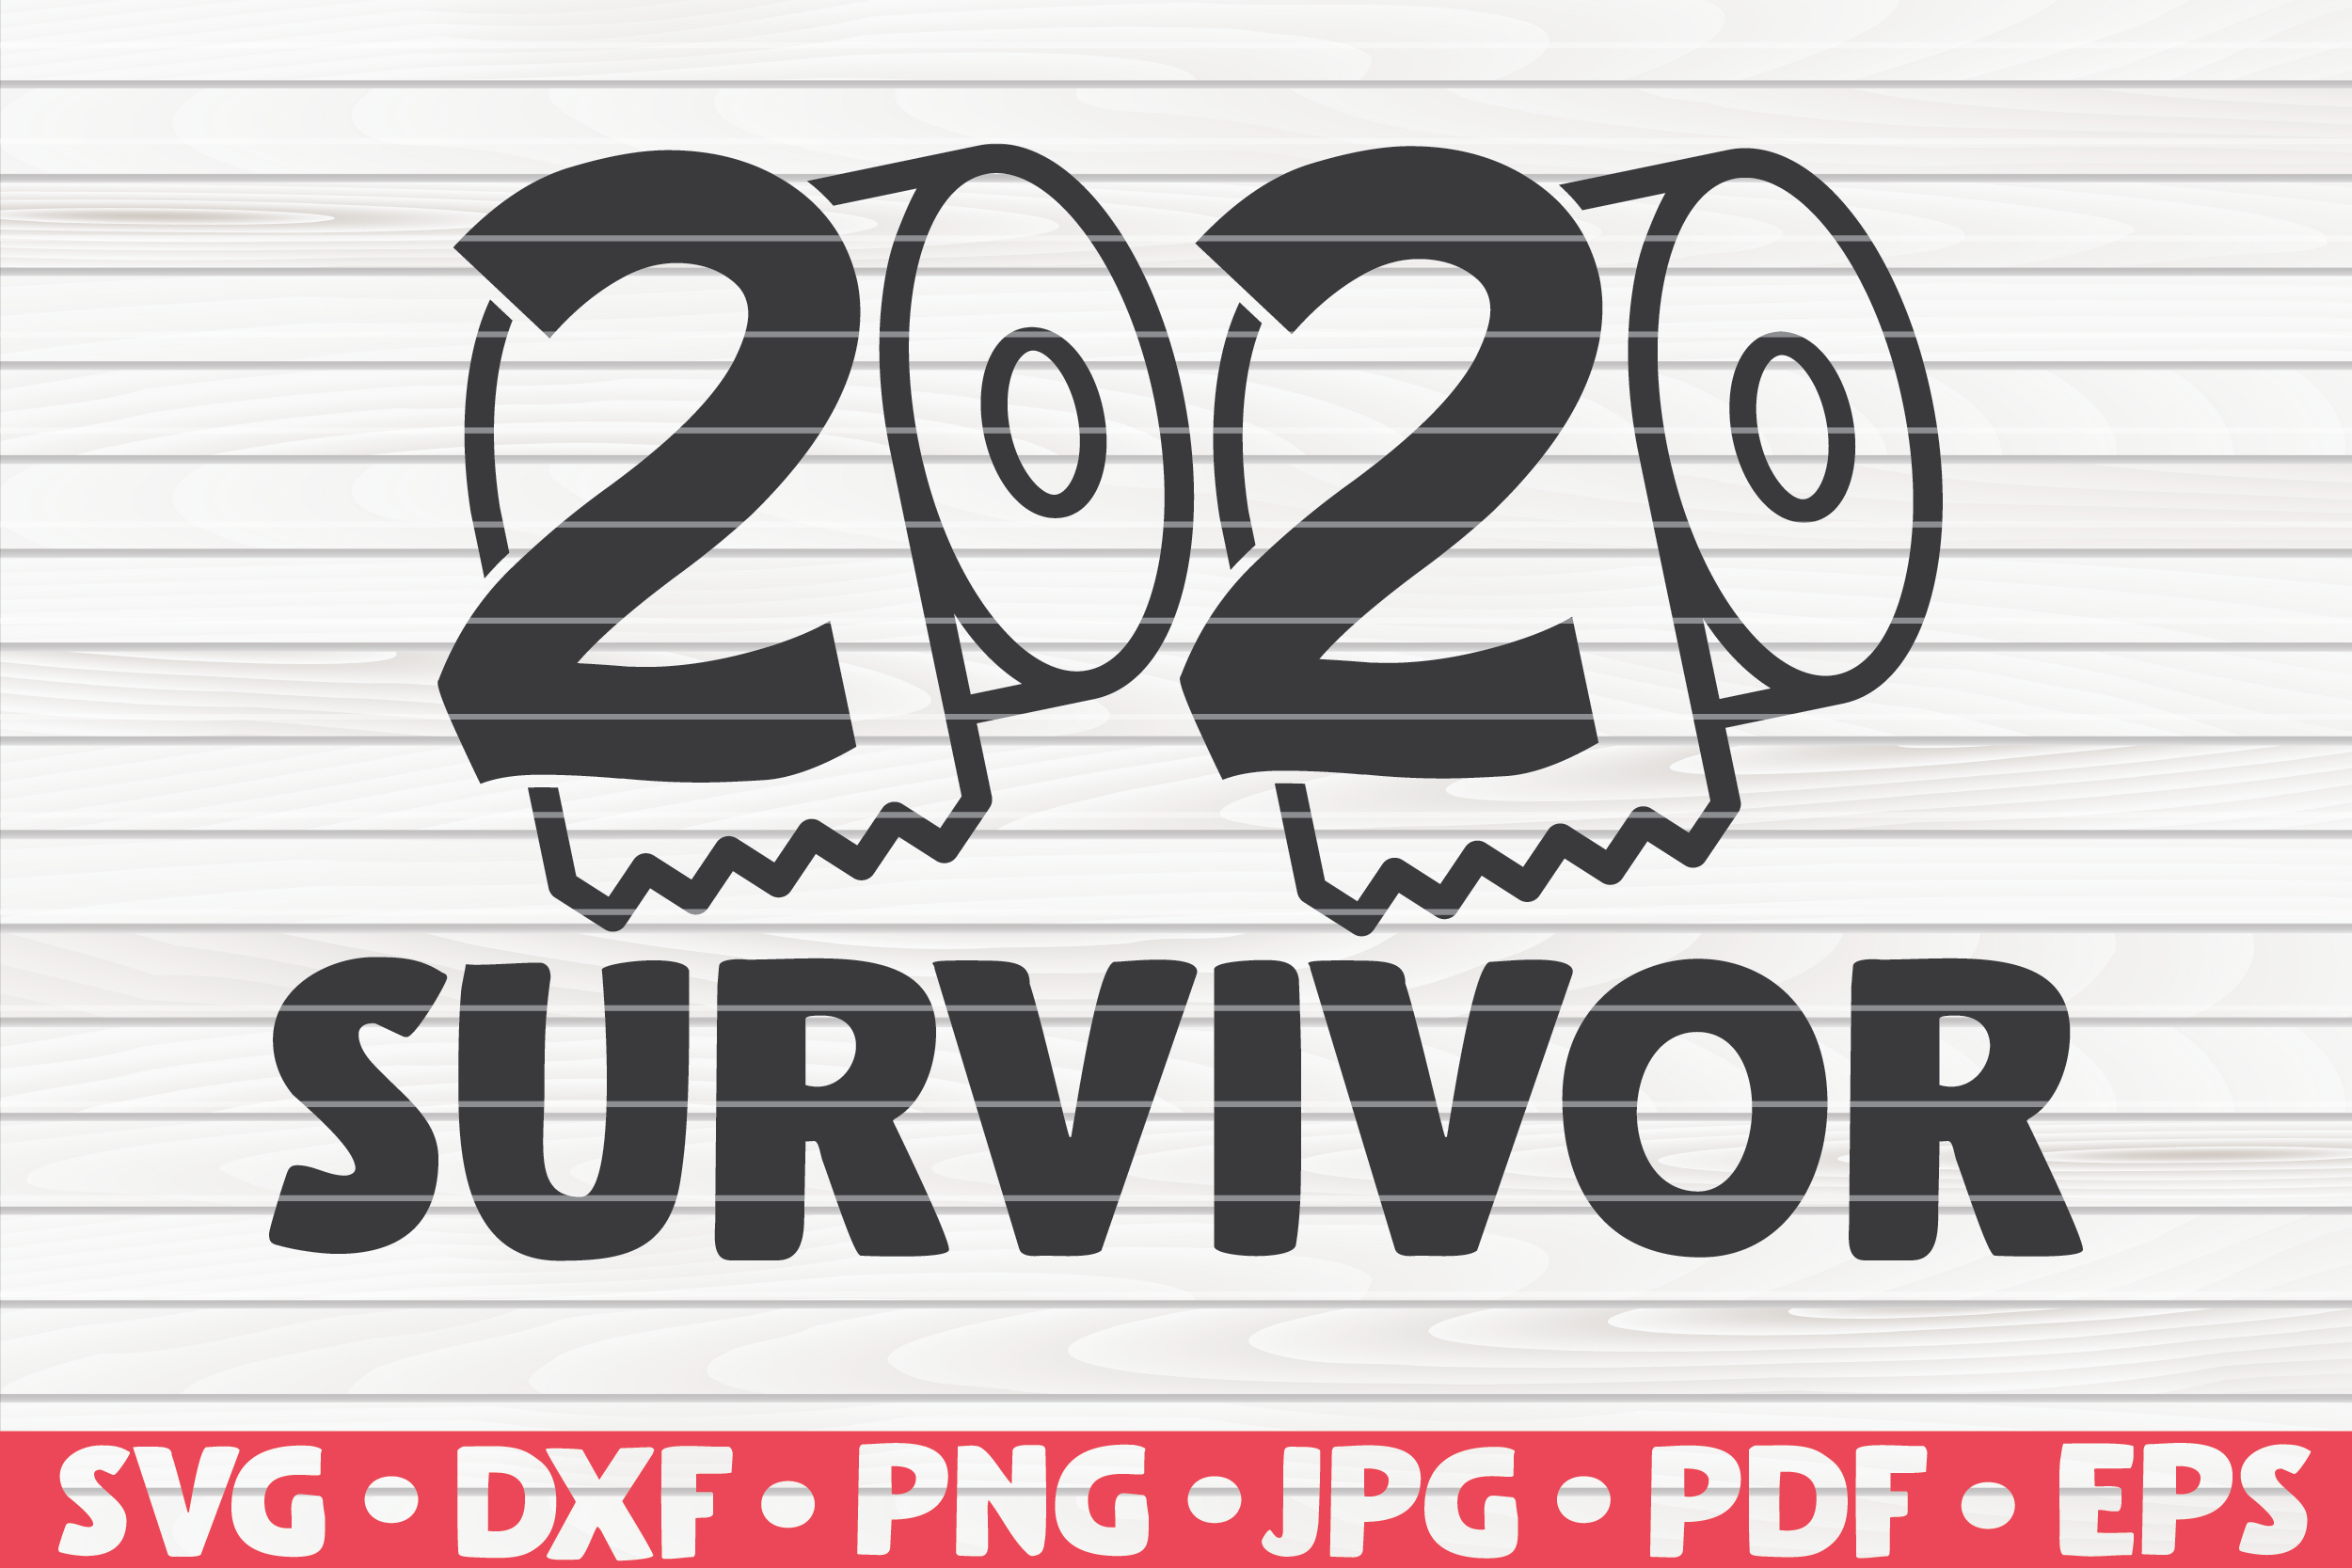 2020 Survivor Graphic By Mihaibadea95 Creative Fabrica